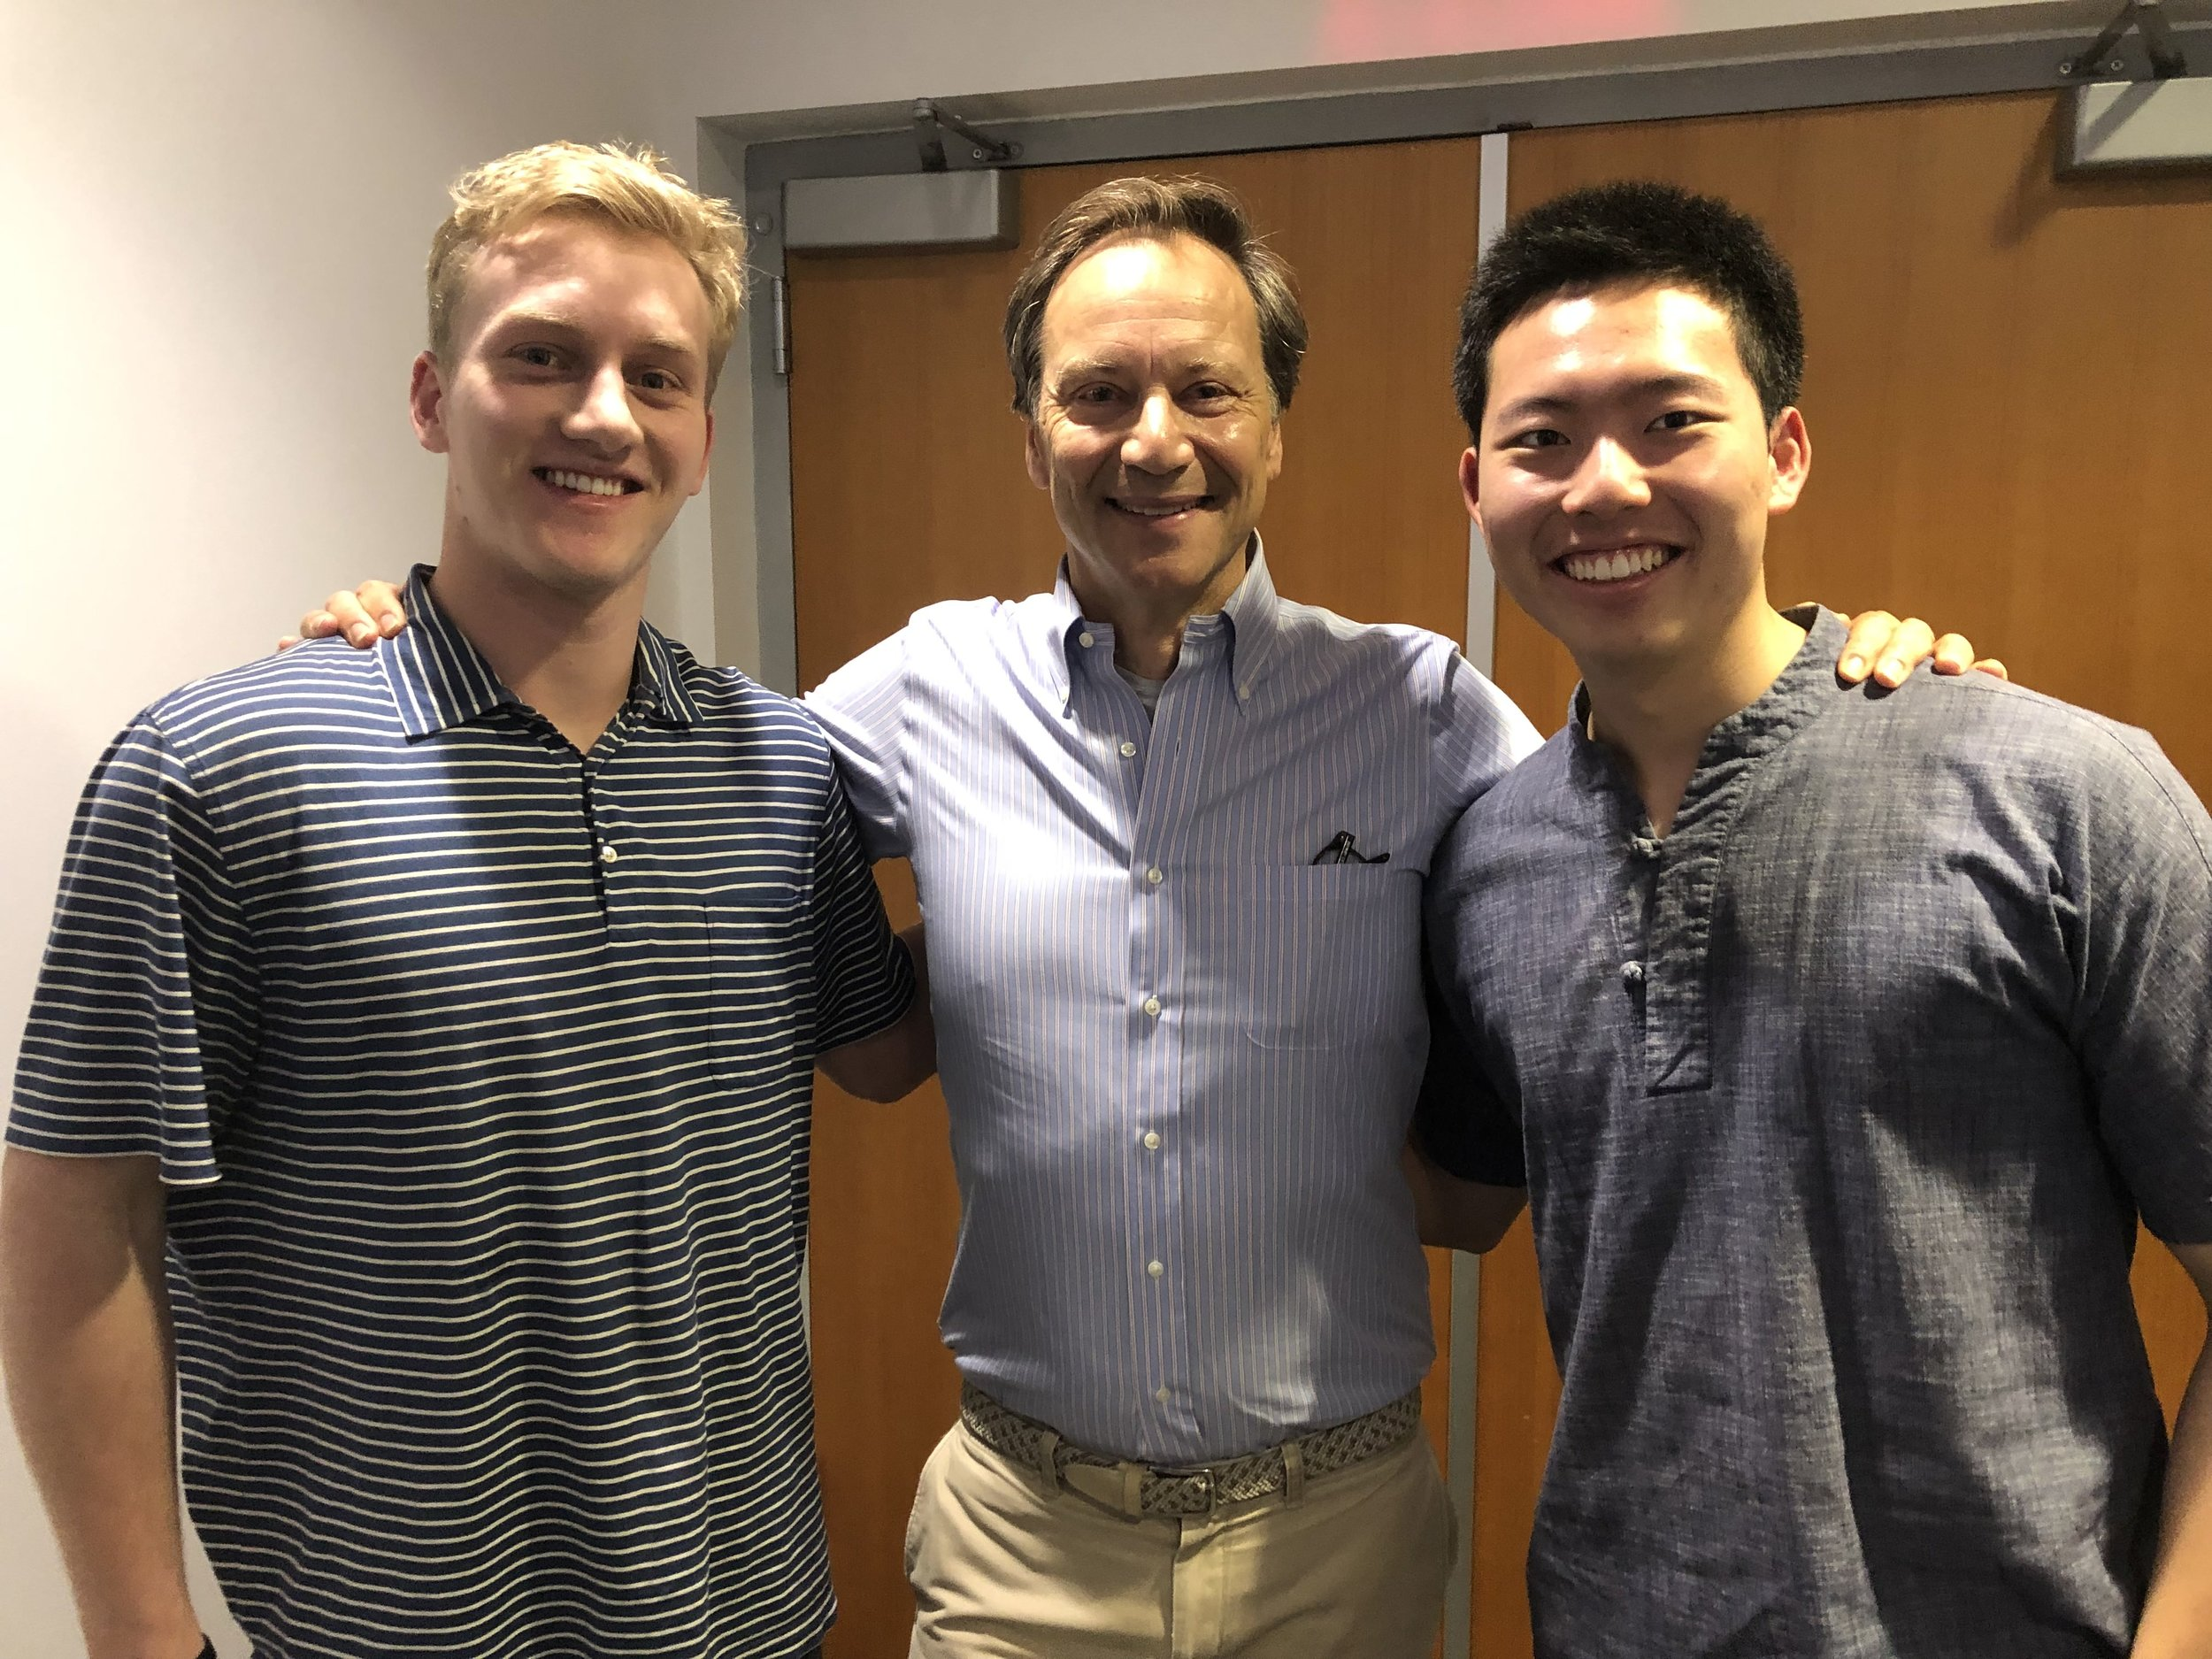 Our team members George Baughan (left) and Tiger Gao (right) with Mr. Mummert